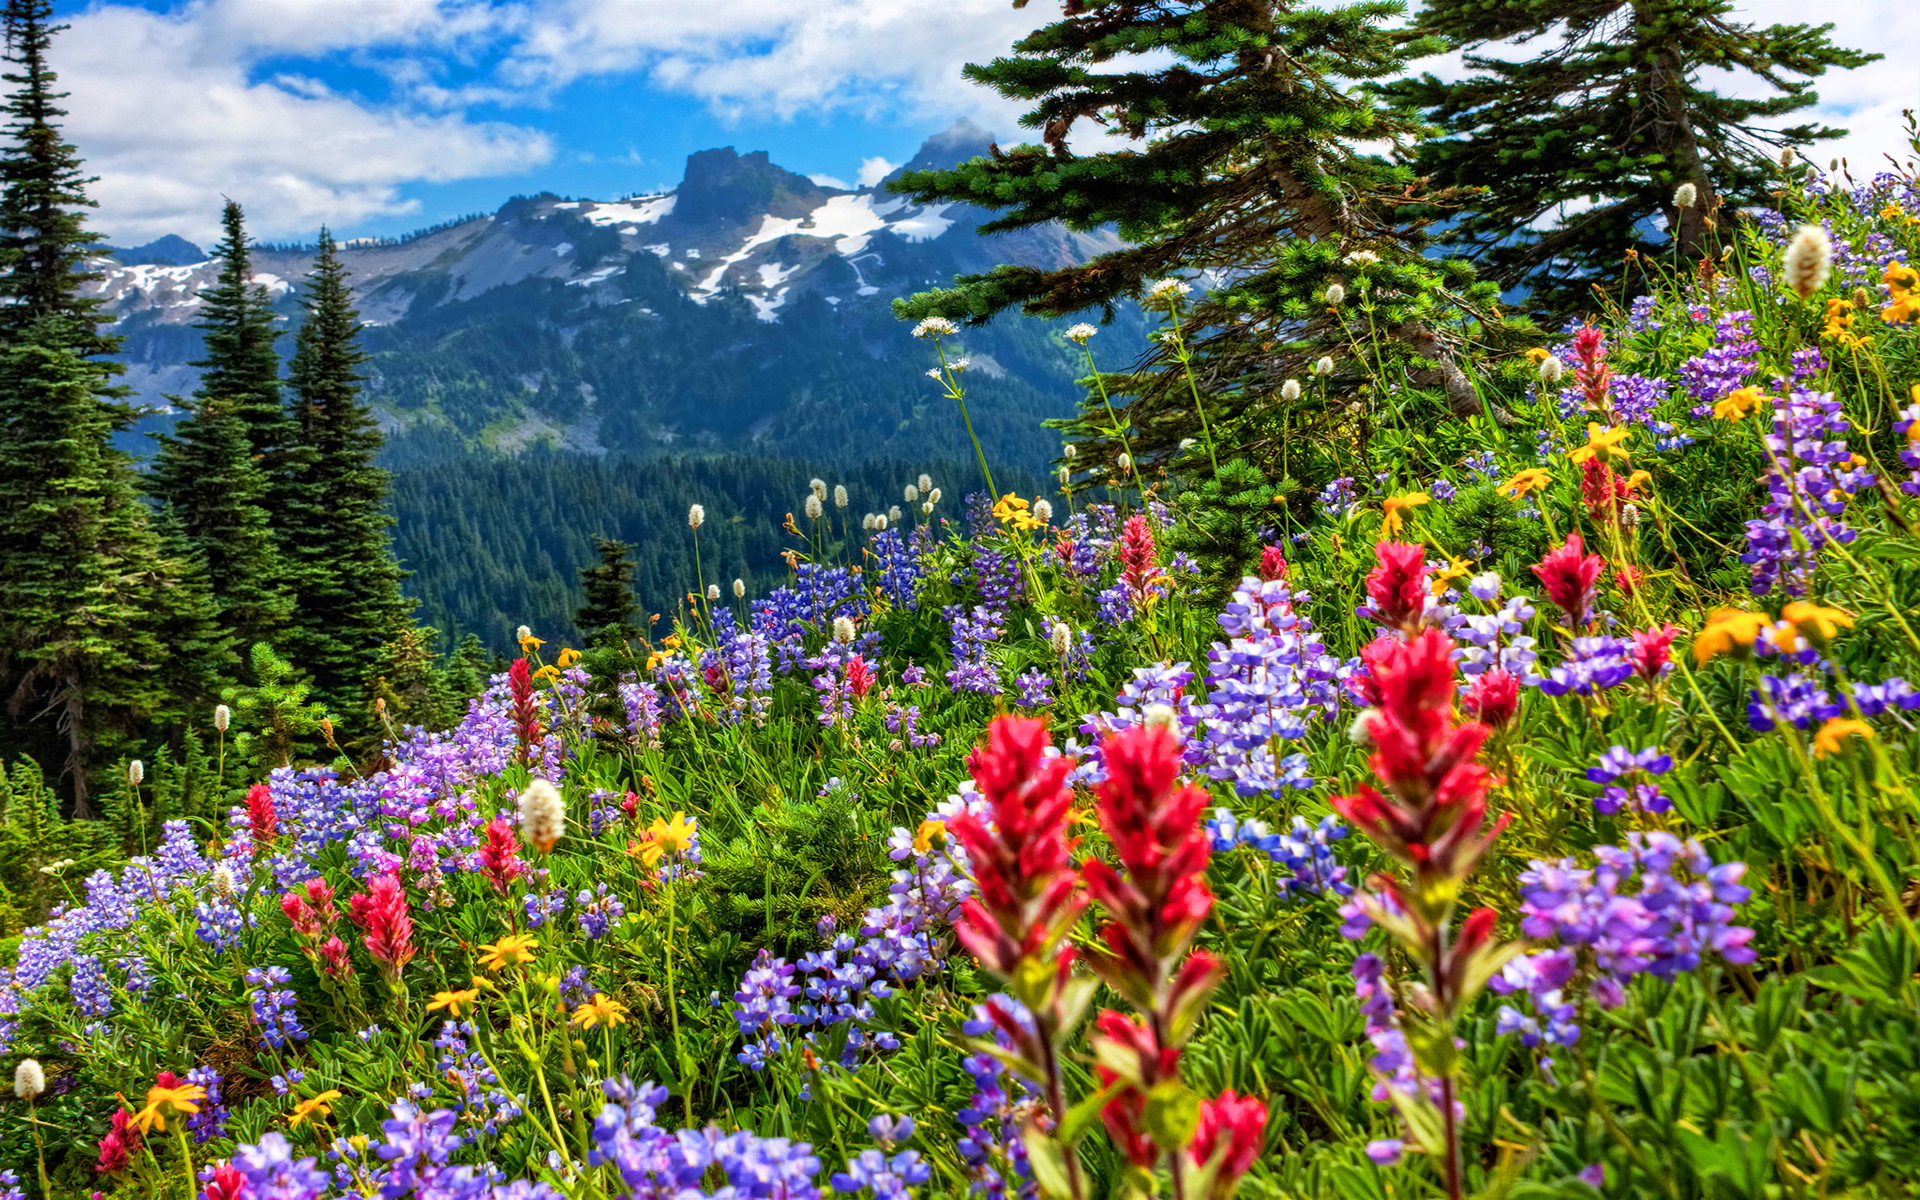 flowers in the mountains wallpapers high quality download fr